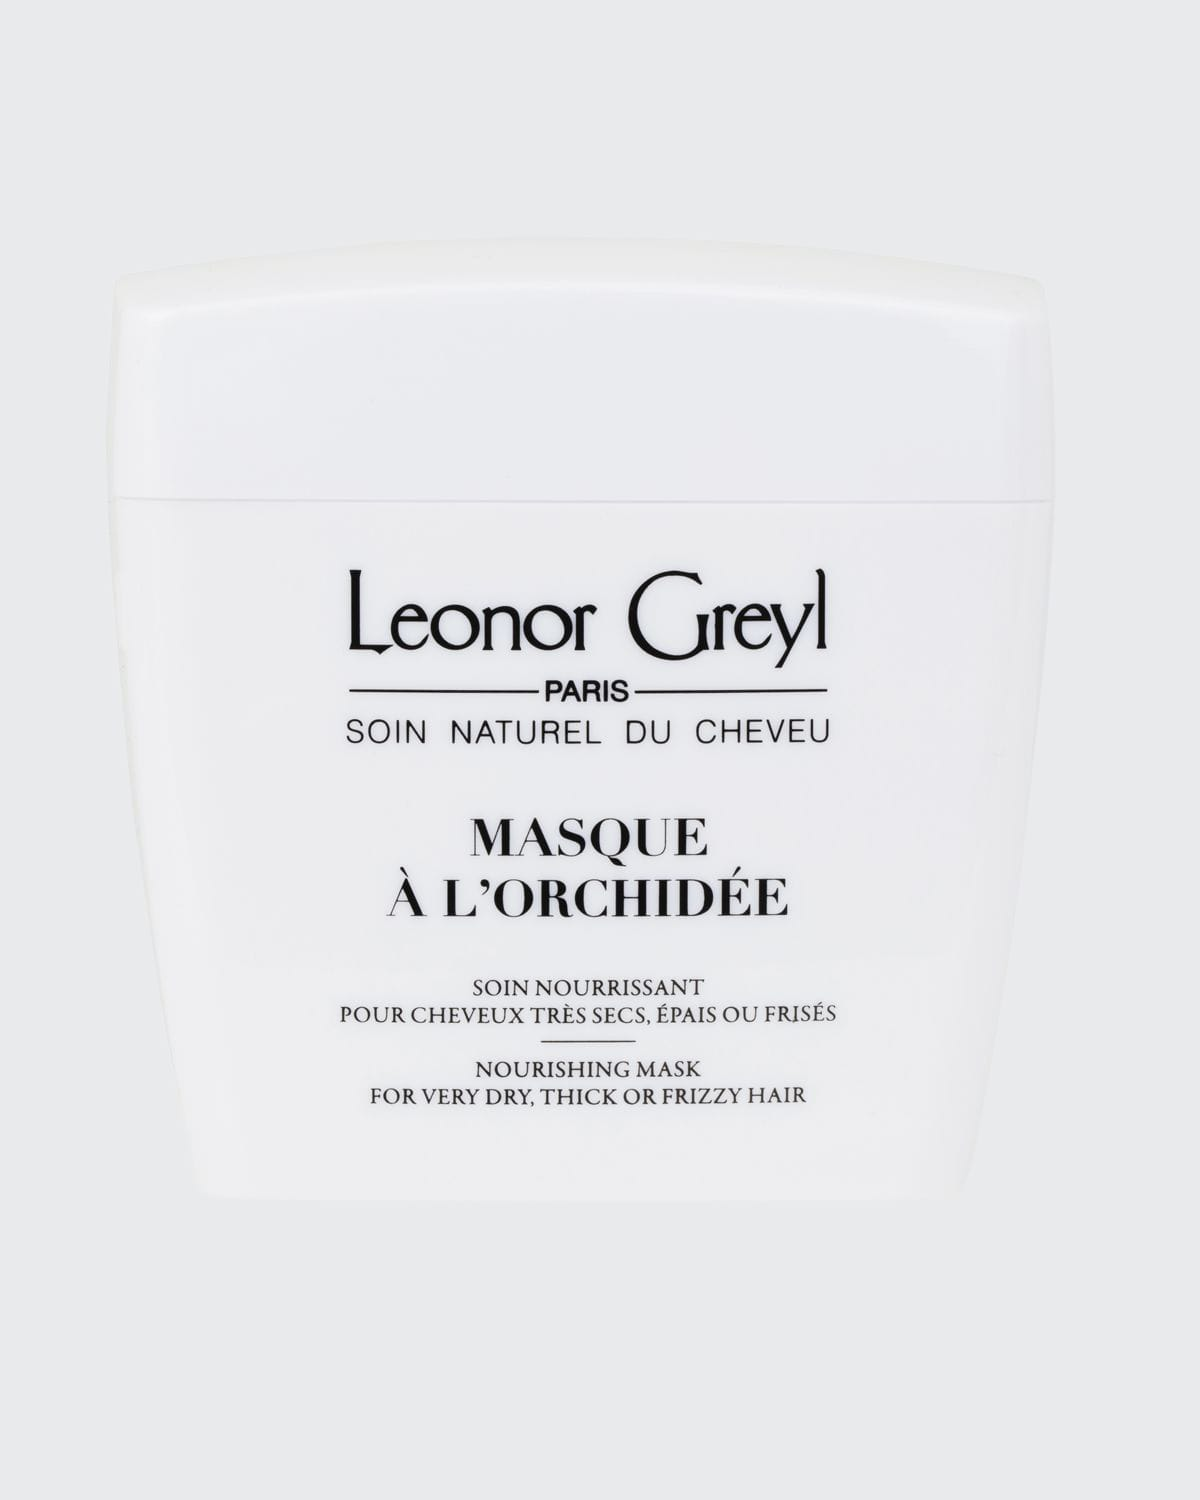 Masque a L'Orchidee (Nourishing Mask for Very Dry